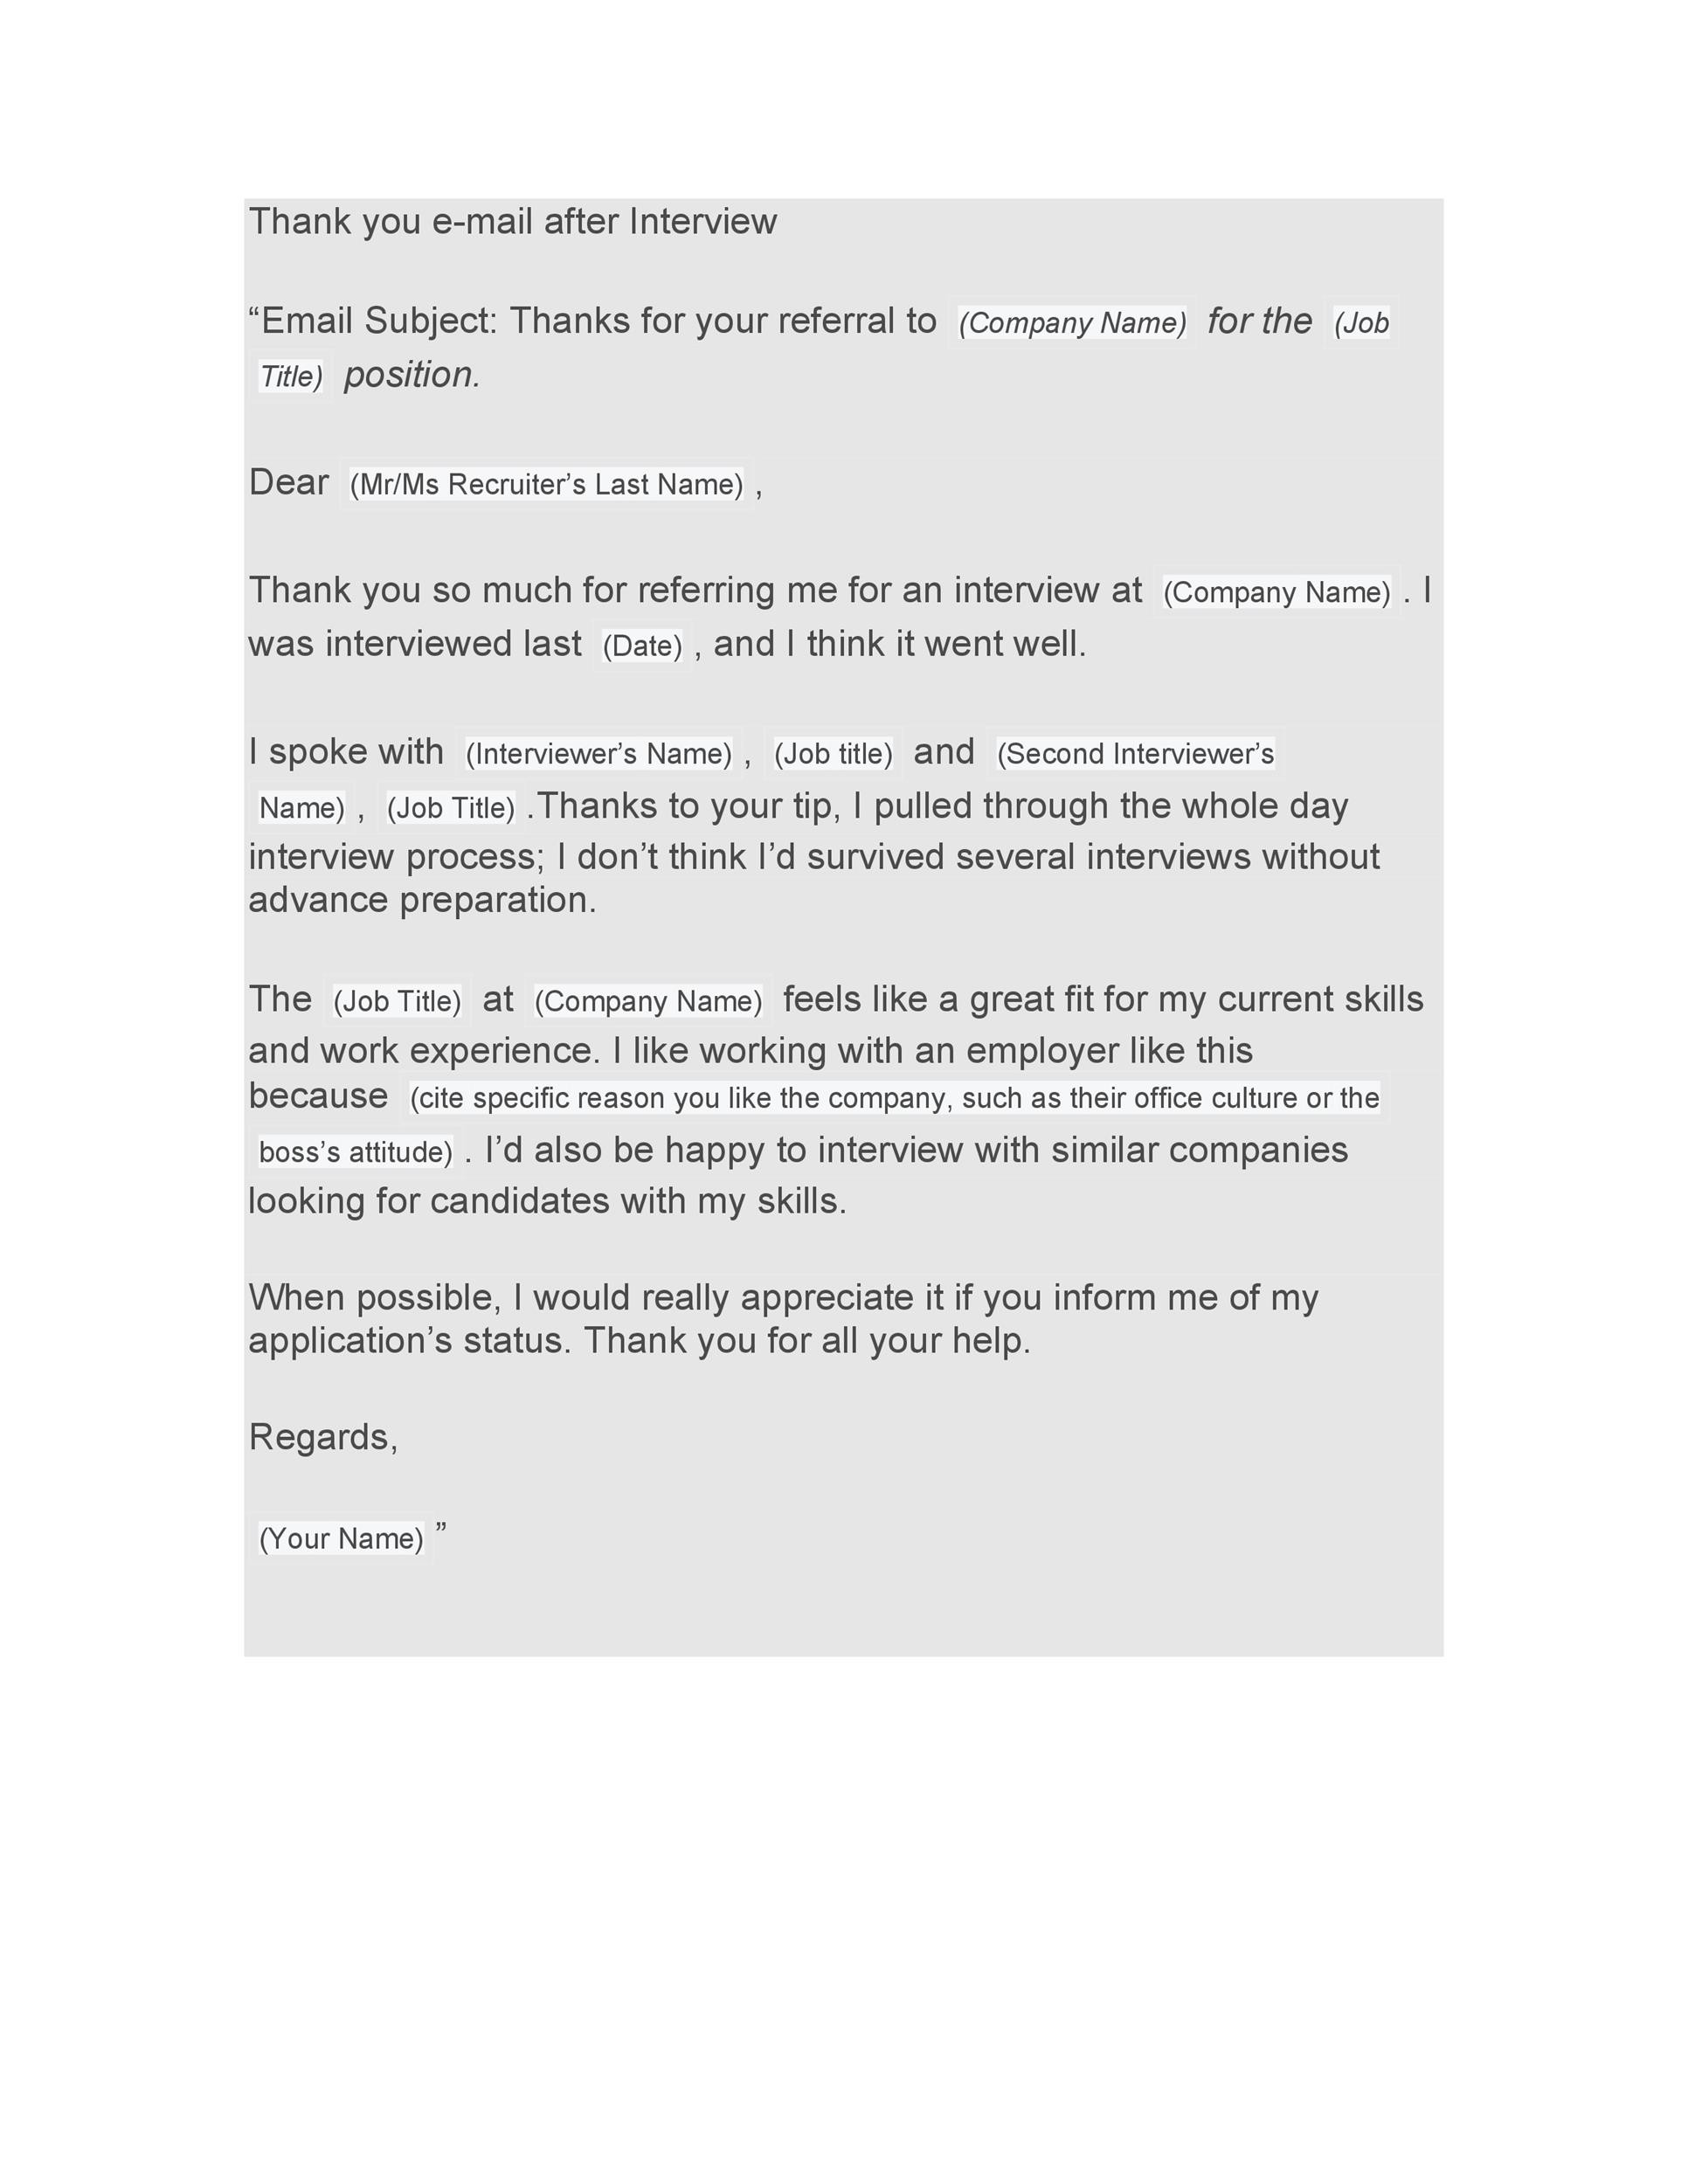 Free Thank you e-mail after Interview Template 18